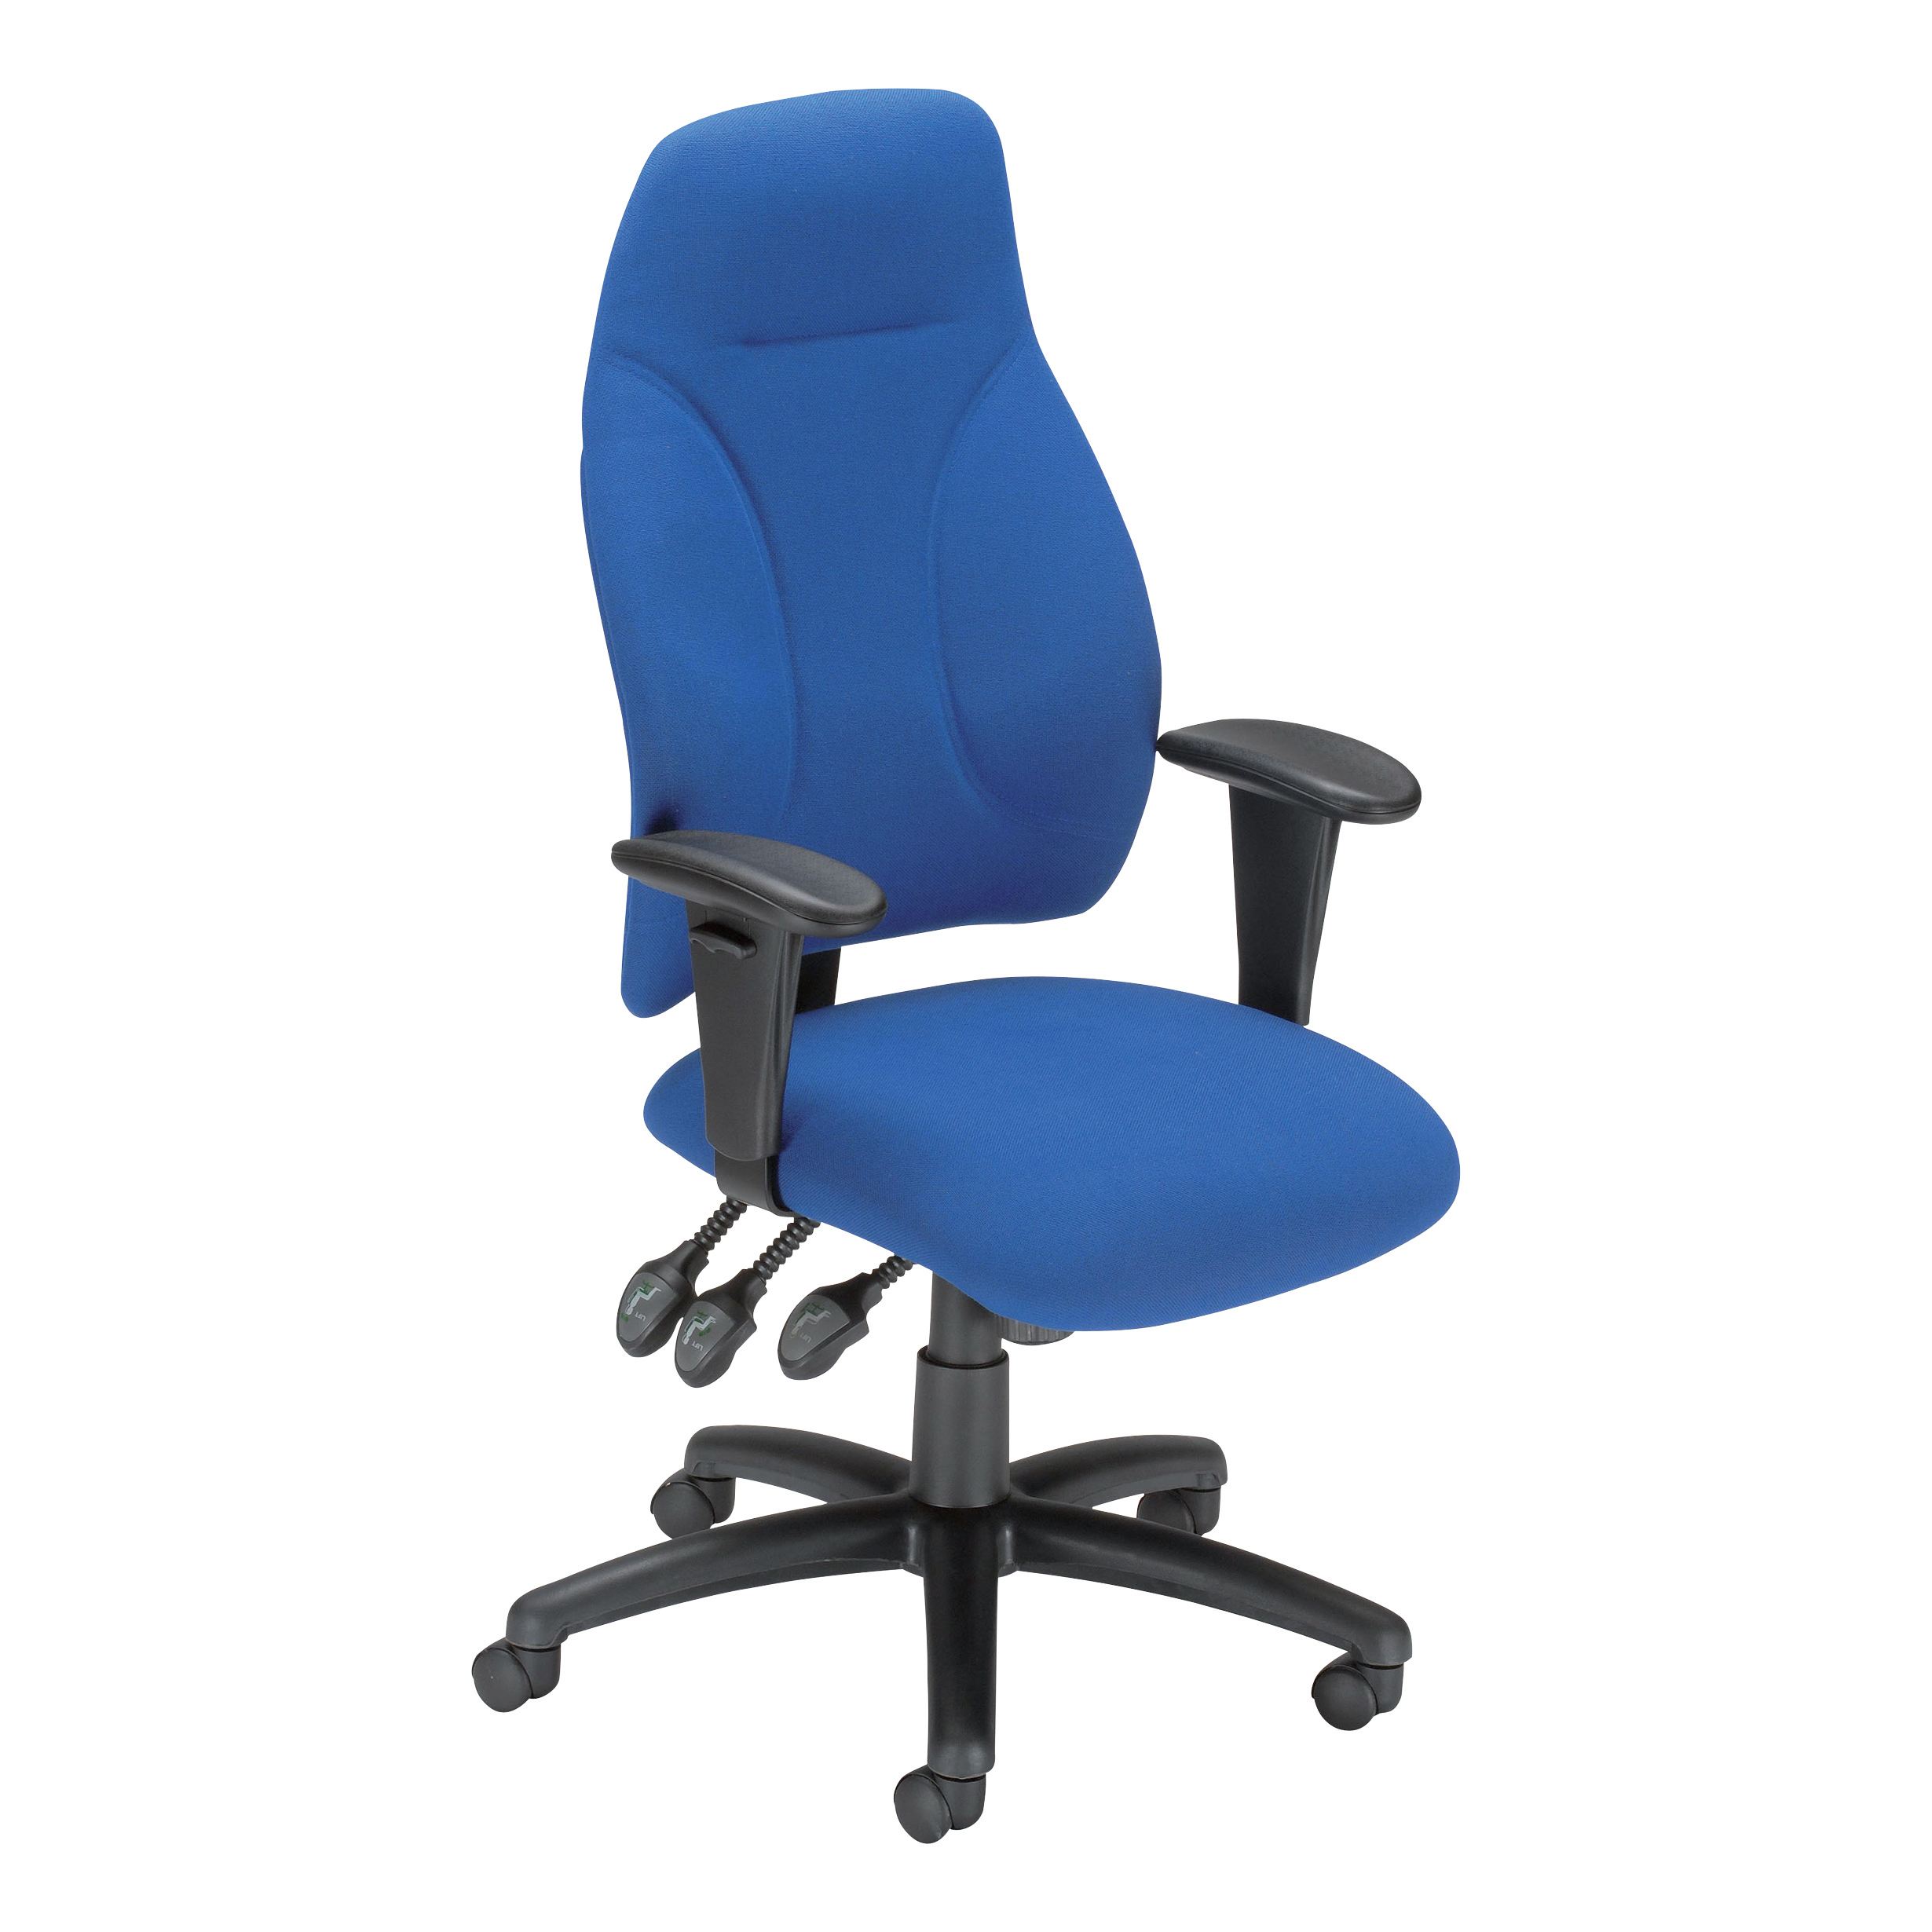 Trexus Posture High Back Asynchronous Chair Blue 500x500x520-530mm Ref SP413853